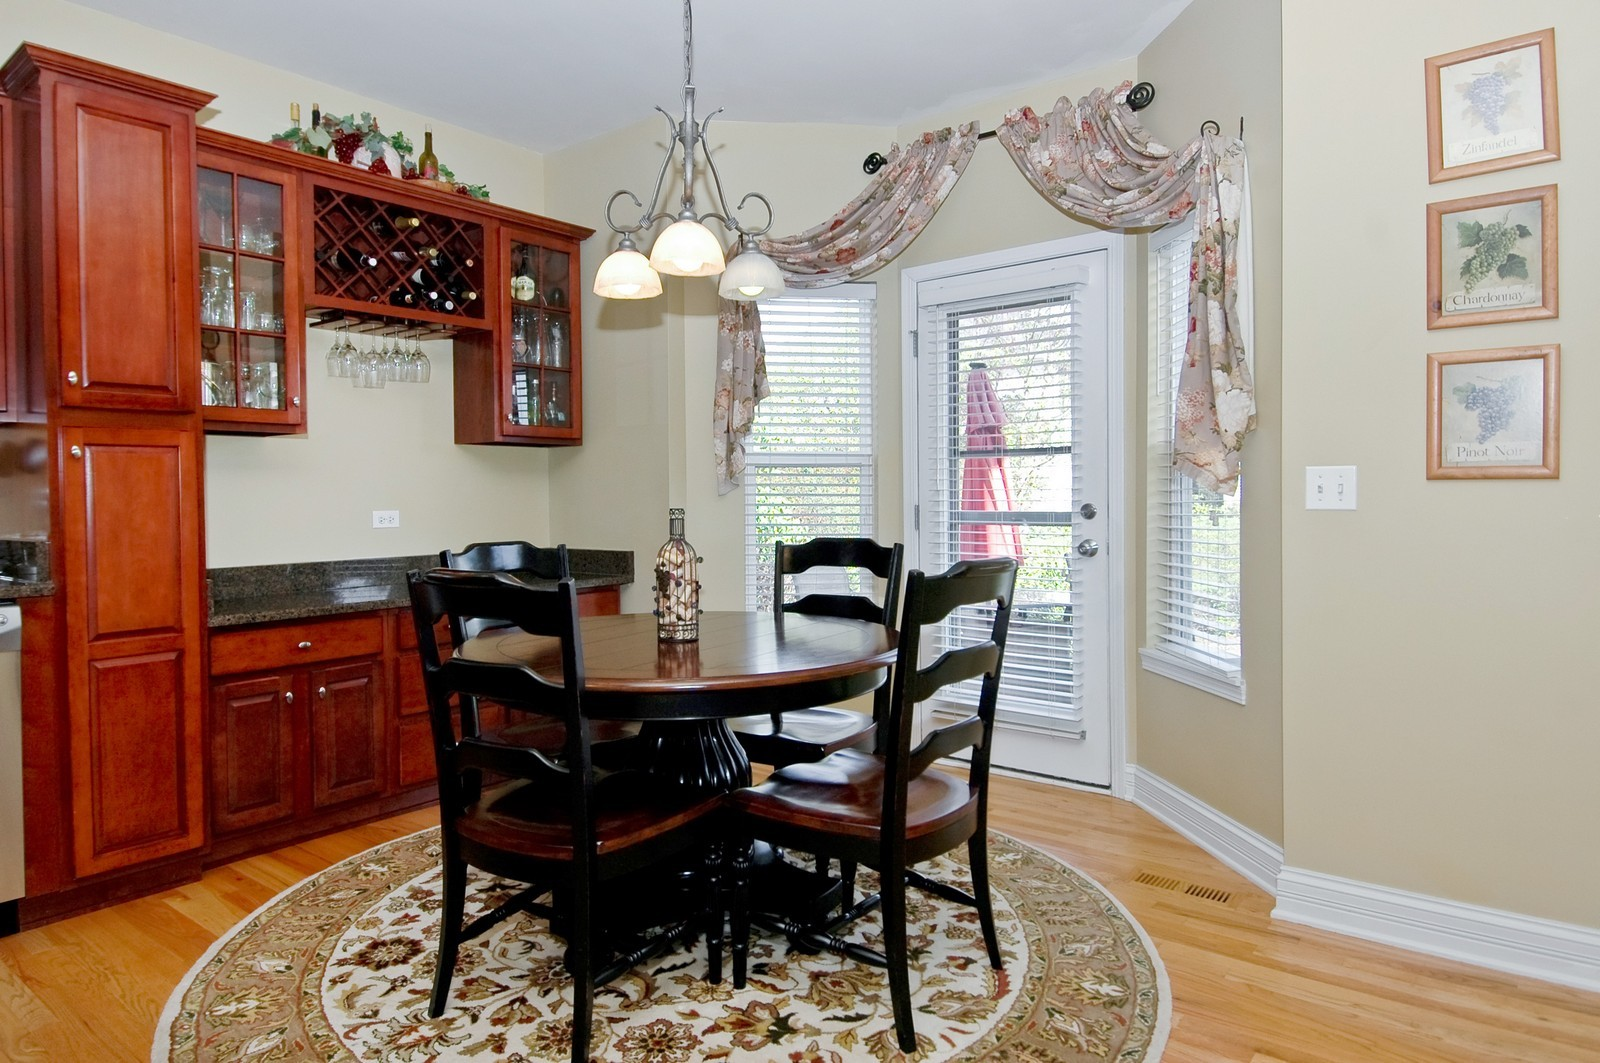 Real Estate Photography - 835 Chasewood Dr, South Elgin, IL, 60177 - Kitchen Eat in Area